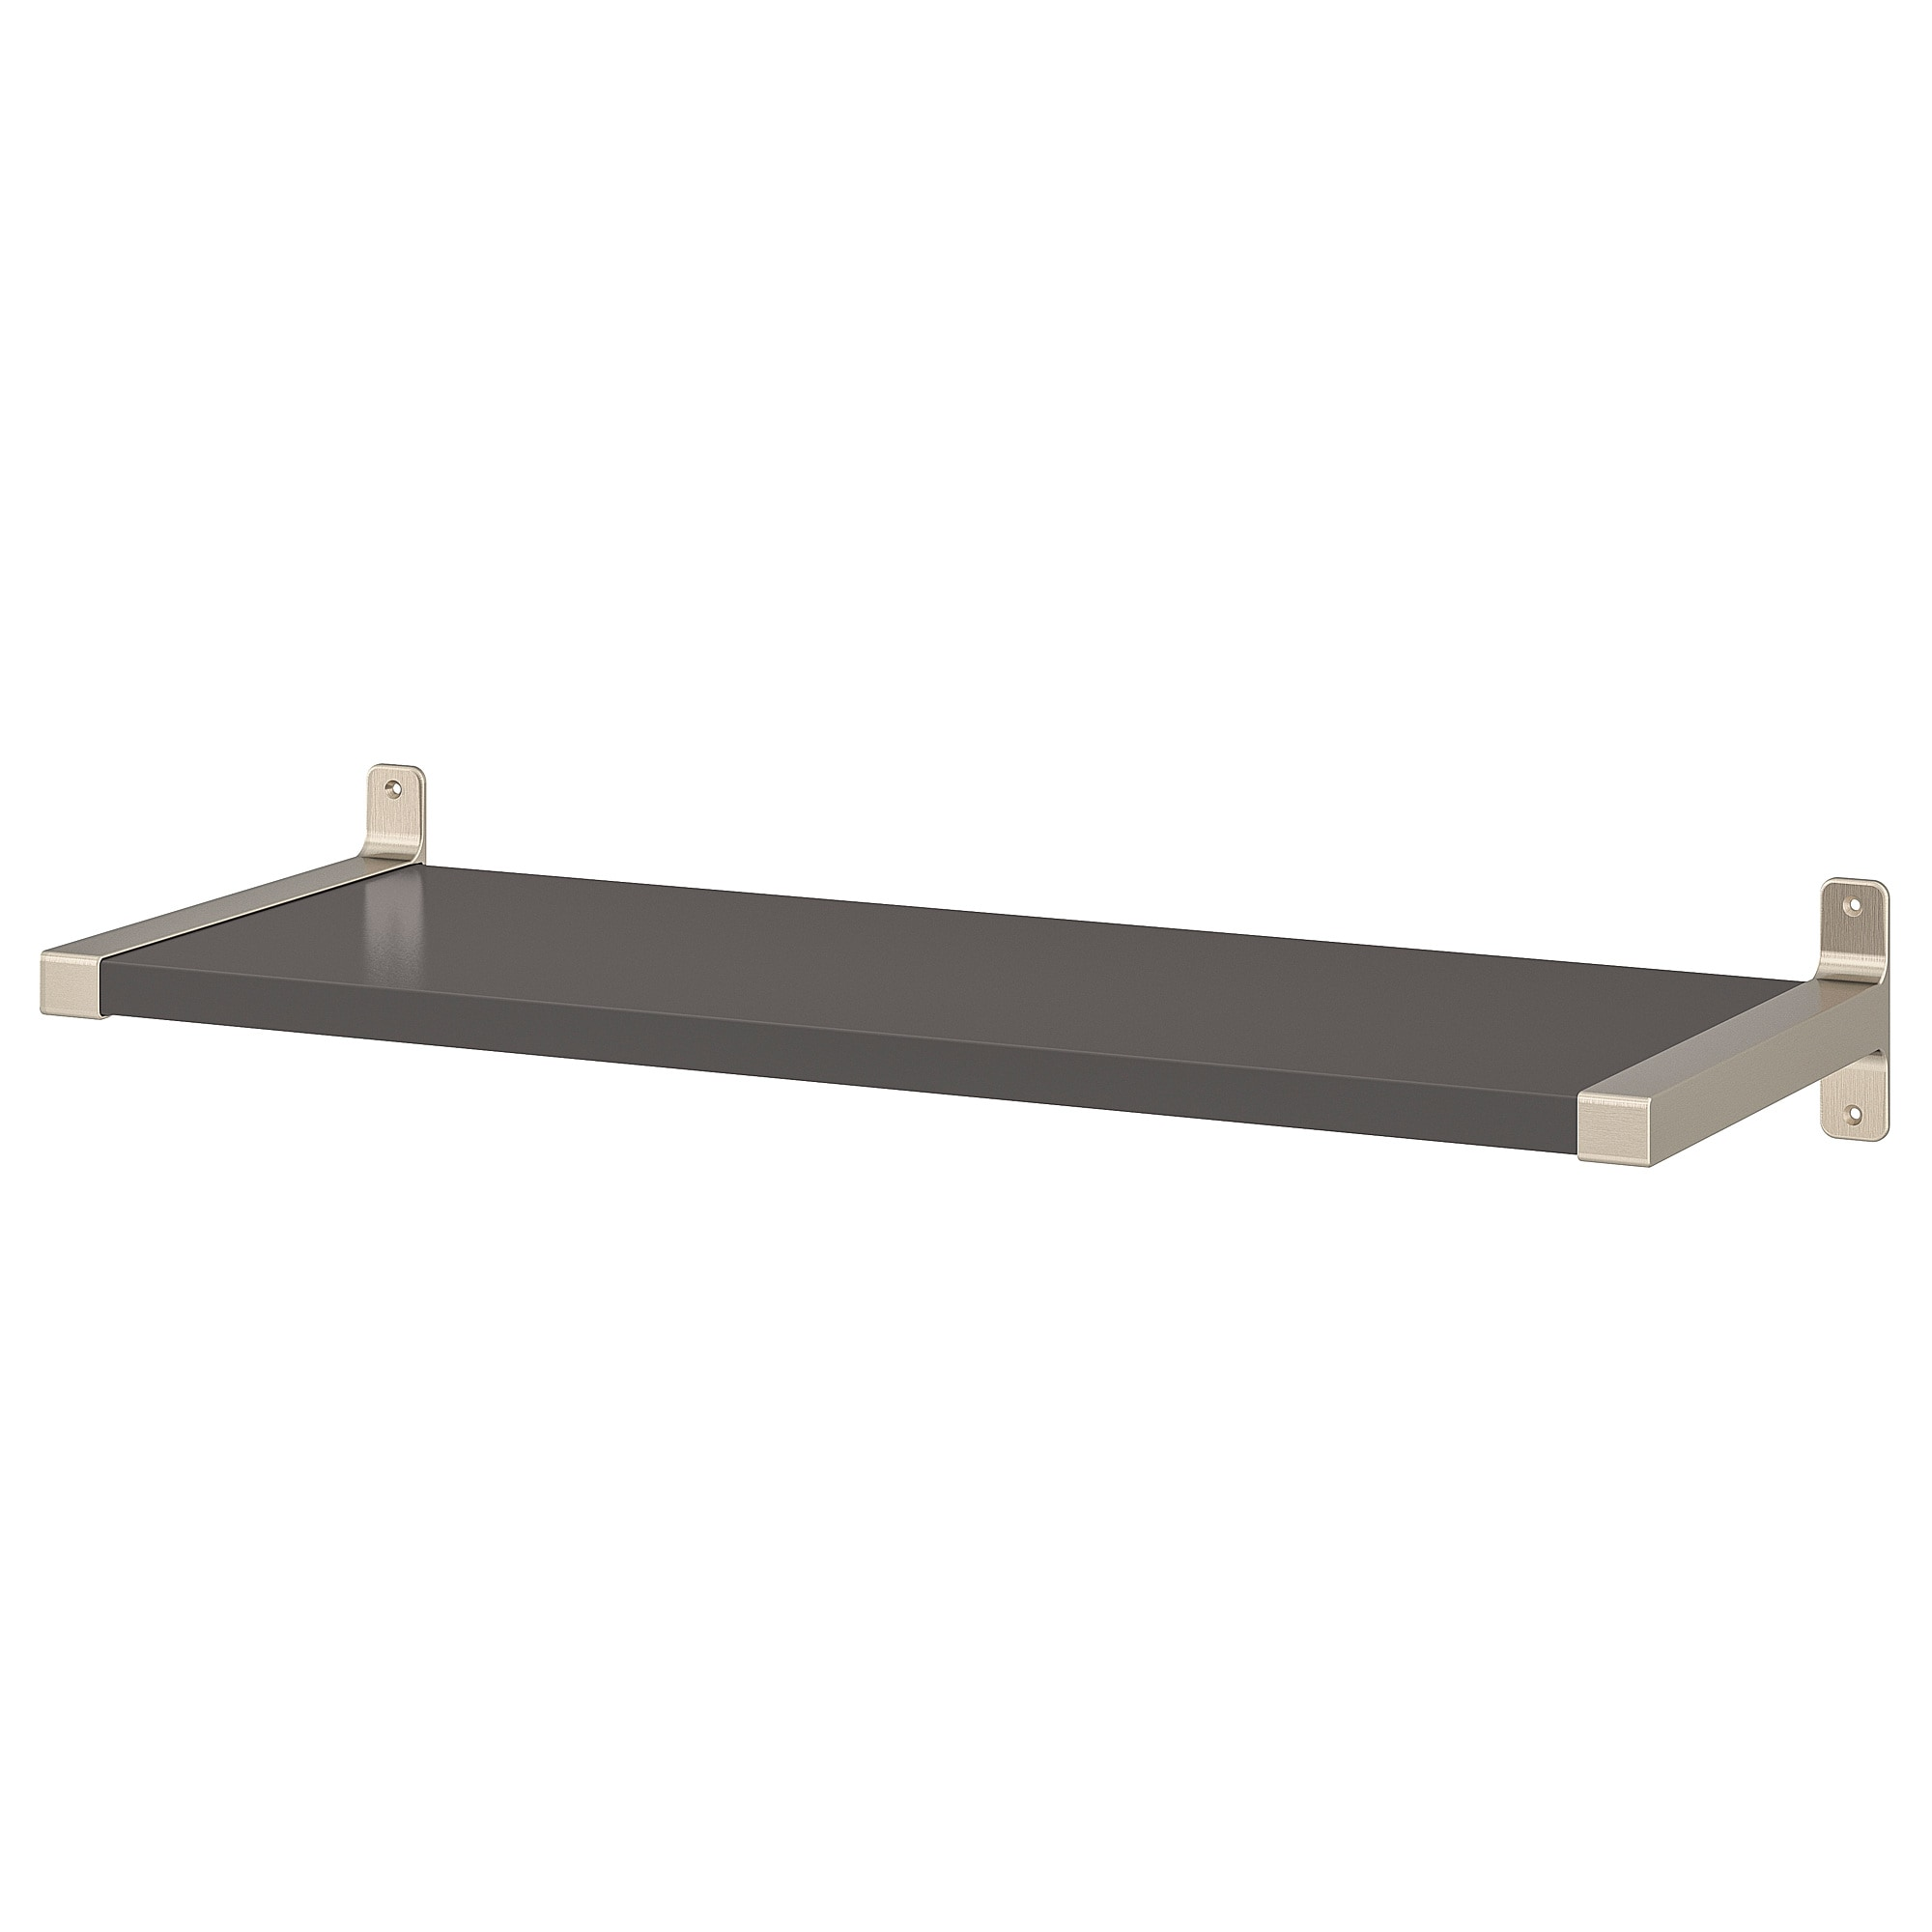 floating shelves wall shelf brackets ikea granhult bergshult dark grey nickel plated light quarter round corner heavy duty shelving homebase deep average closet height large glass